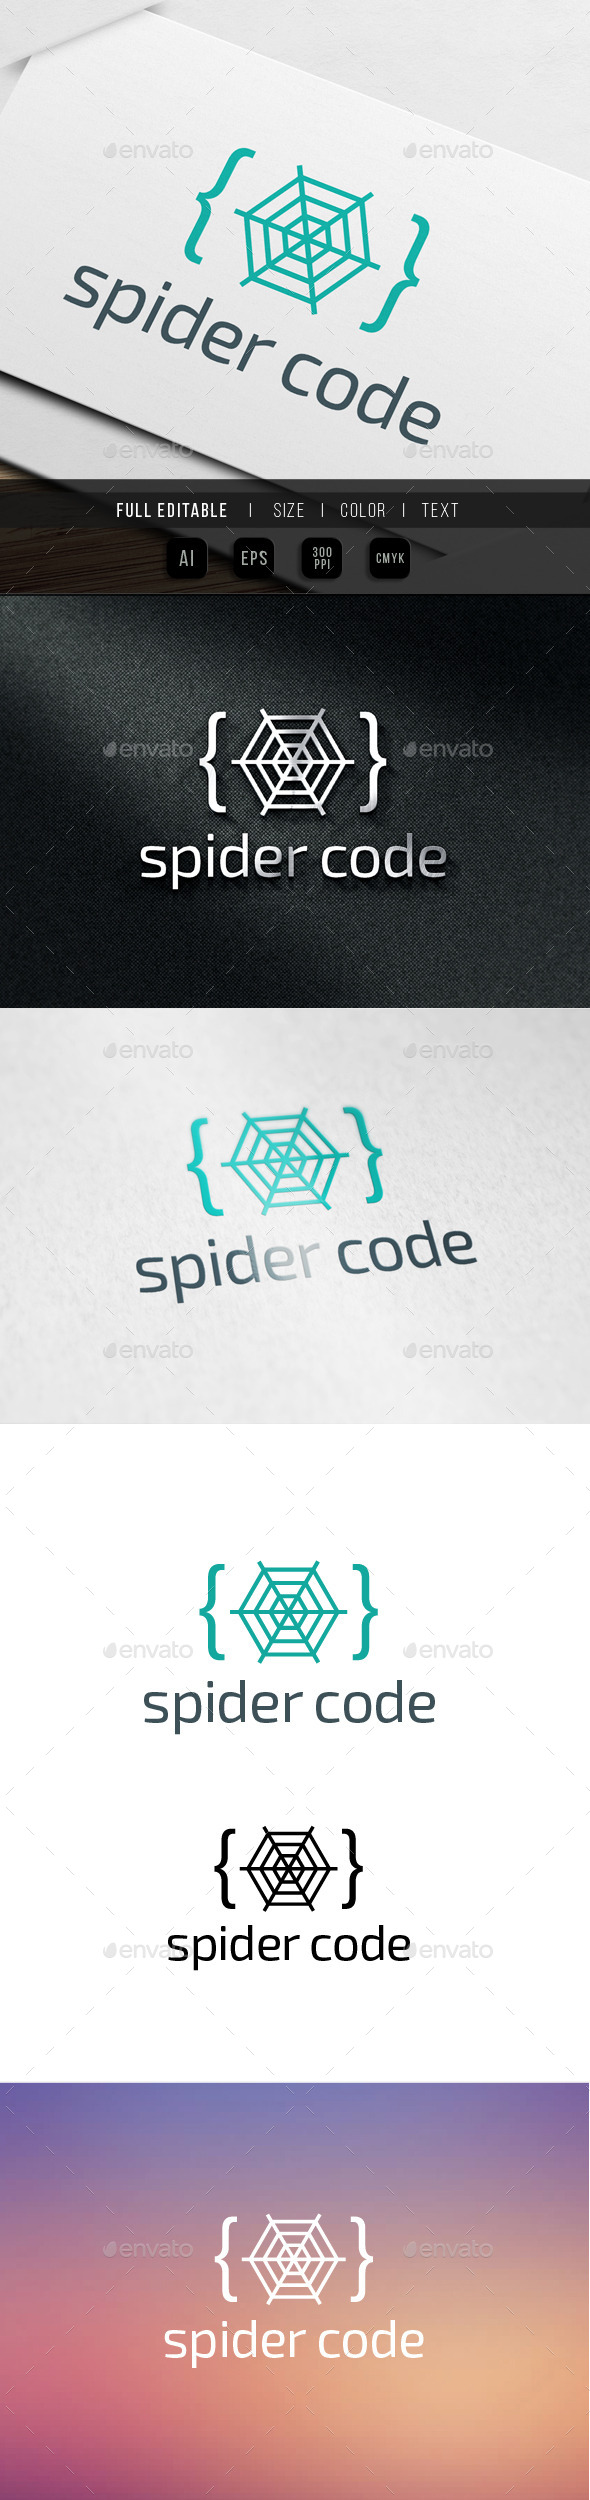 Spider Code Logo - Abstract Logo Templates